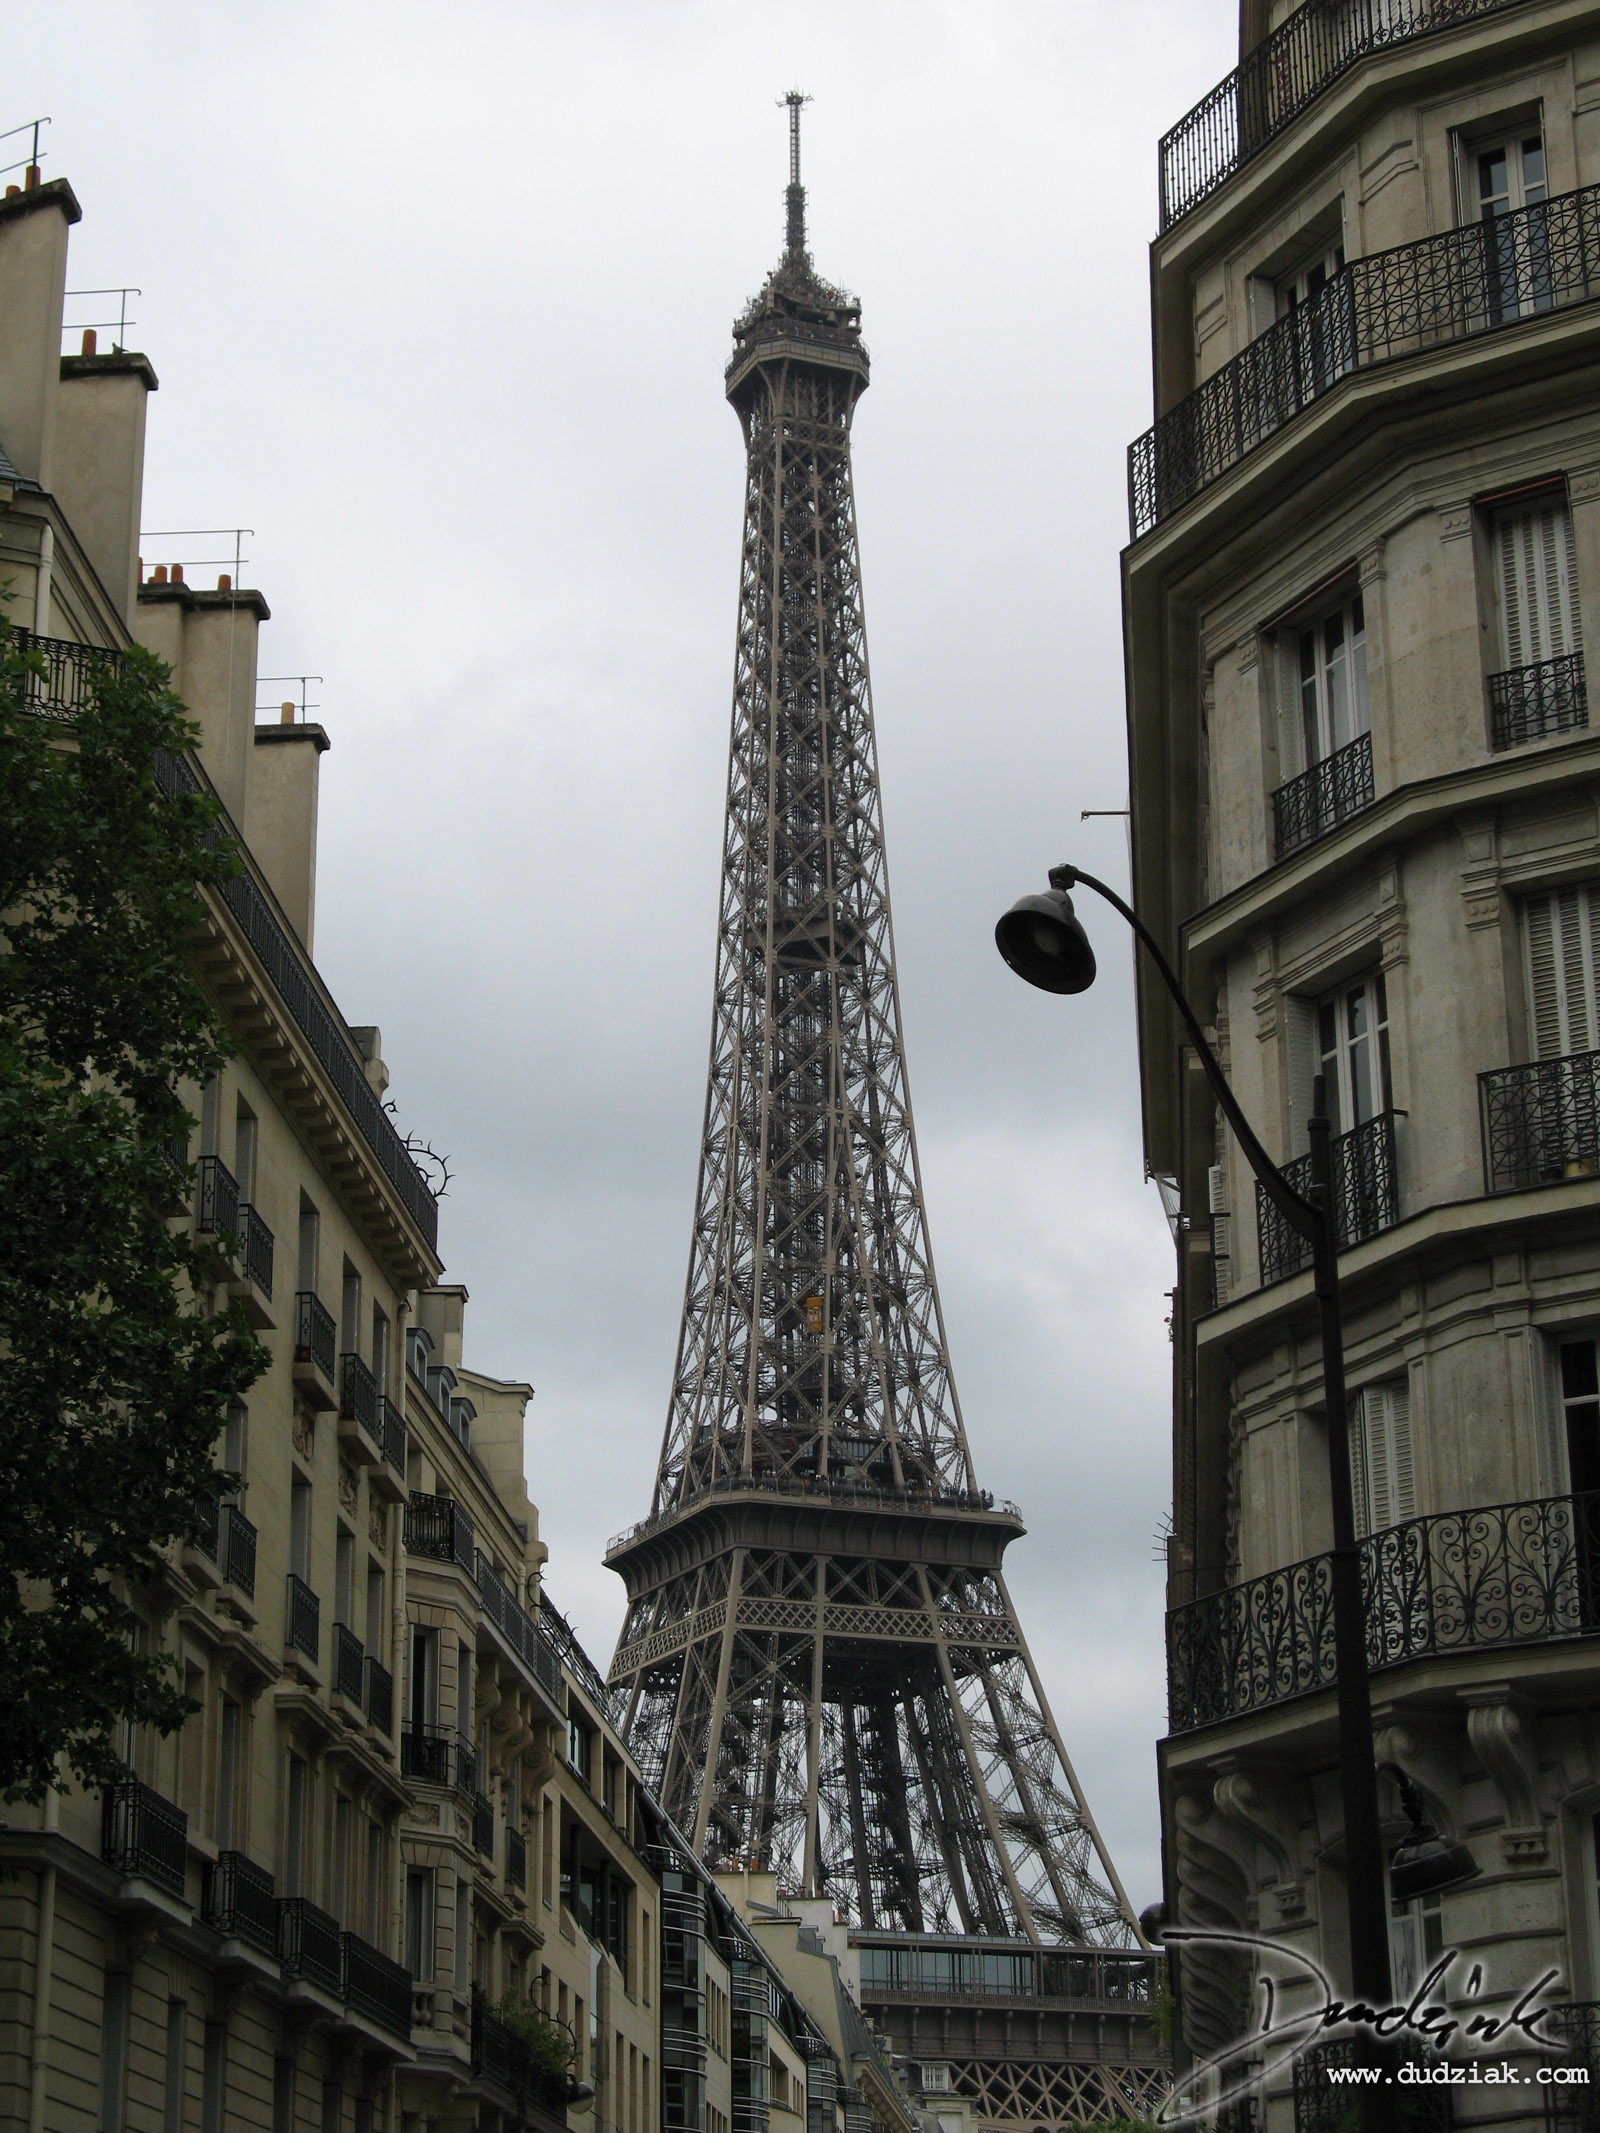 Picture of the Eiffel Tower (Tour Eiffel) as seen from the streets of Paris.  This picture was taken from south-east of the tower.